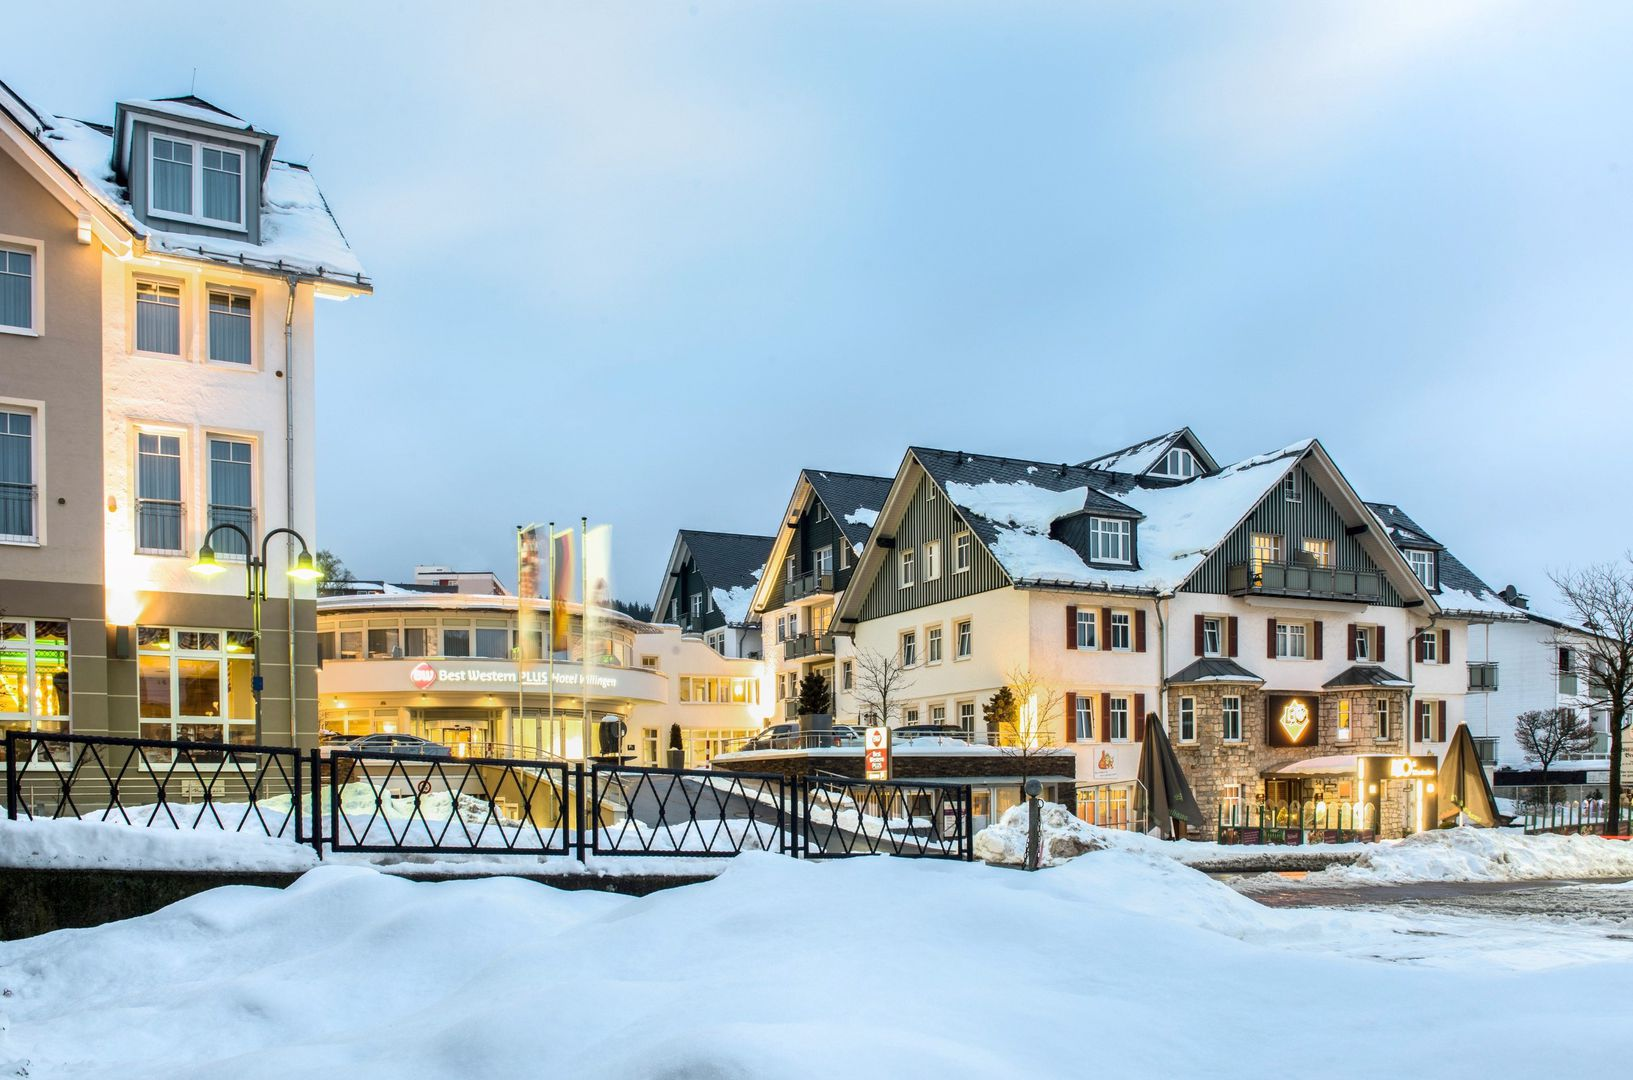 Ferienhaus Mit Pool Willingen Luxury Hotel Best Western Plus Hotel Willingen Willingen Upland